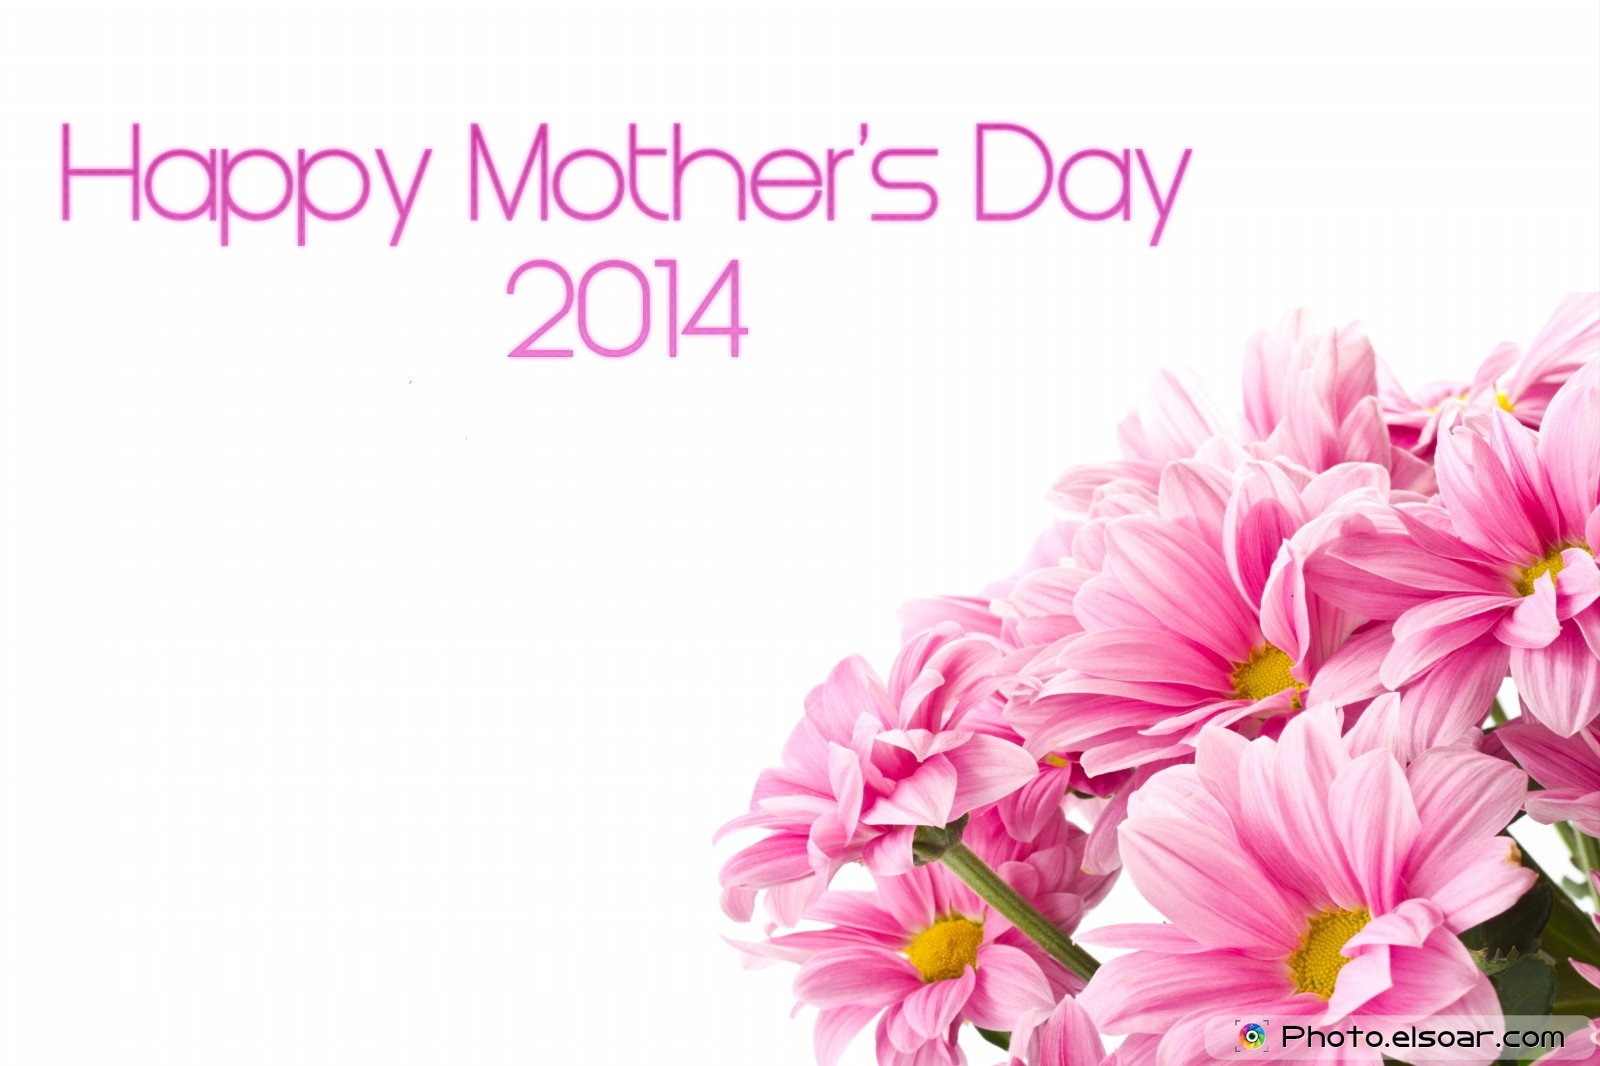 Happy Mothers Day 2014 C